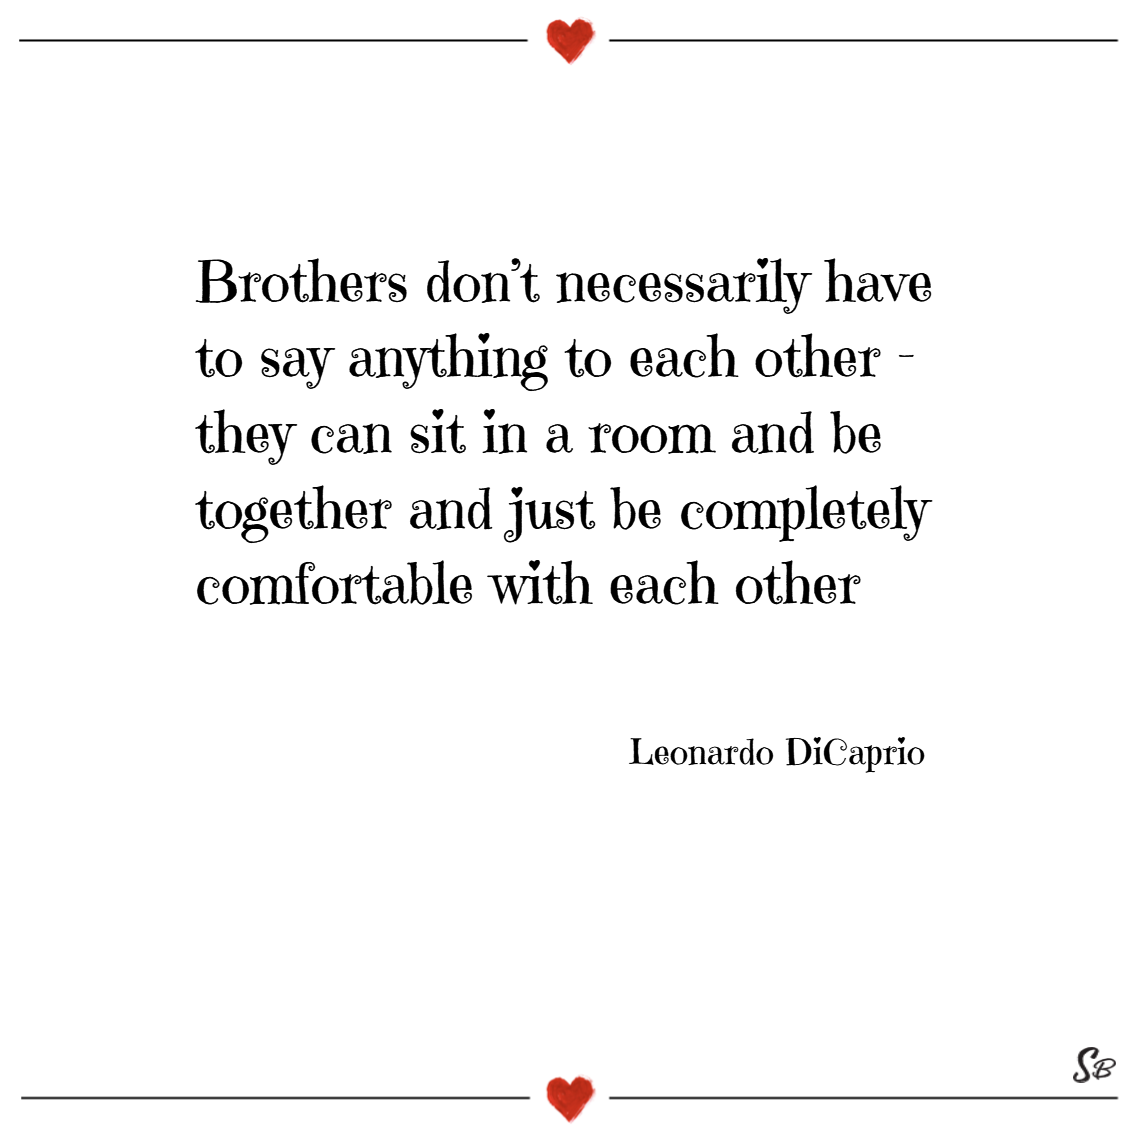 Brothers don't necessarily have to say anything to each other – they can sit in a room and be together and just be completely comfortable with each other. – leonardo dicaprio